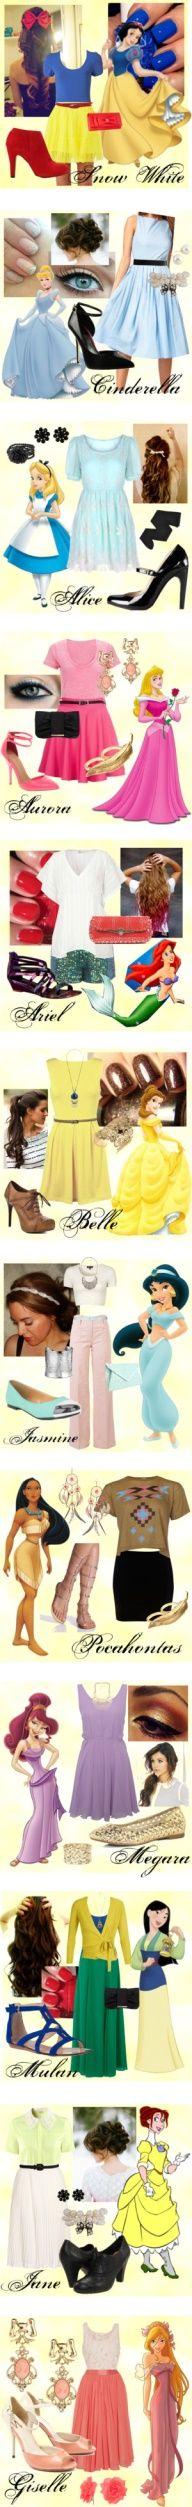 I love some of these! Disney Outfits TOO CUTE